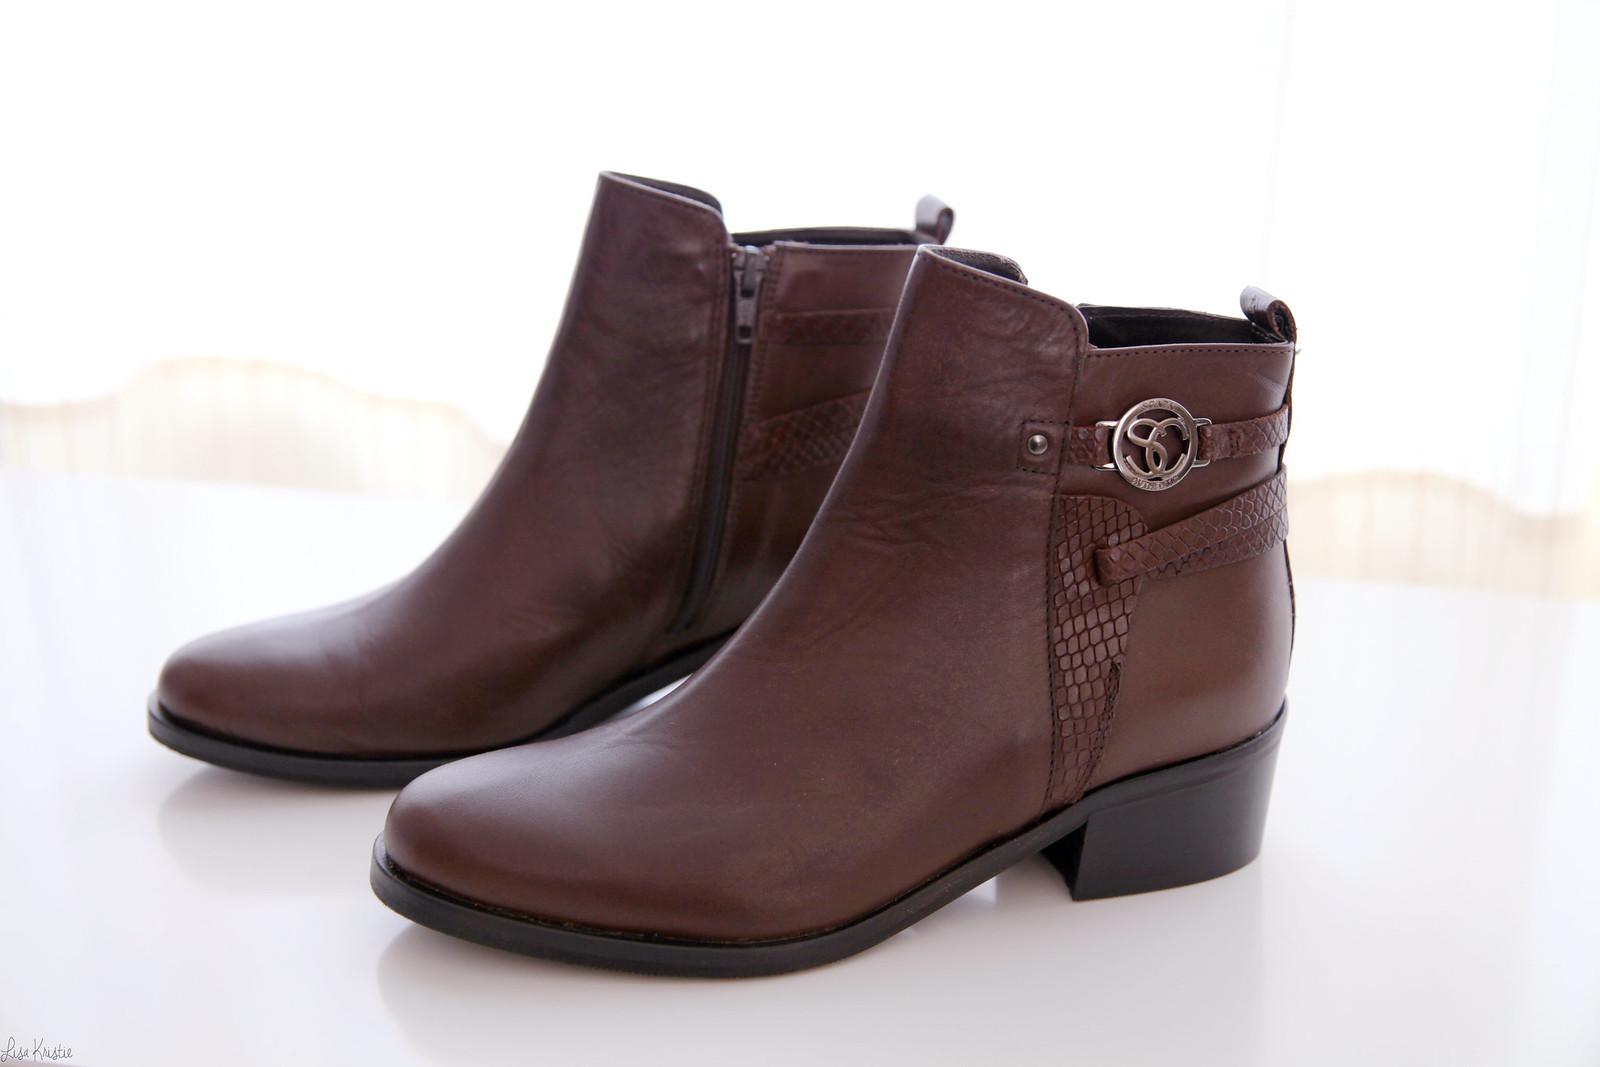 scapa shoes brown leather ankle booties flat small heel buckles 2015 collection 2016 sale